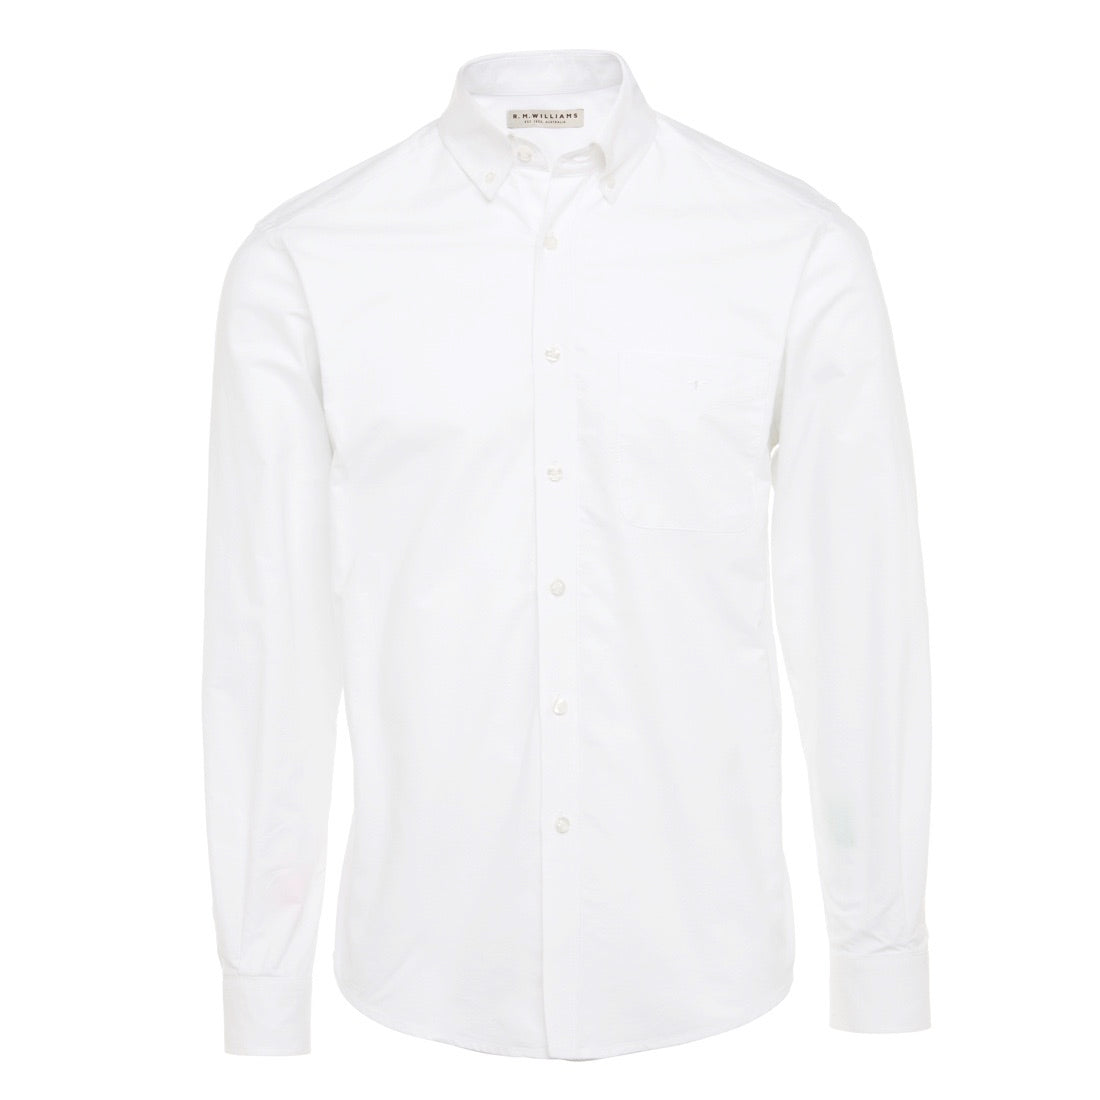 R.M.Williams Collins Shirt White Button Down Collar Regular fit